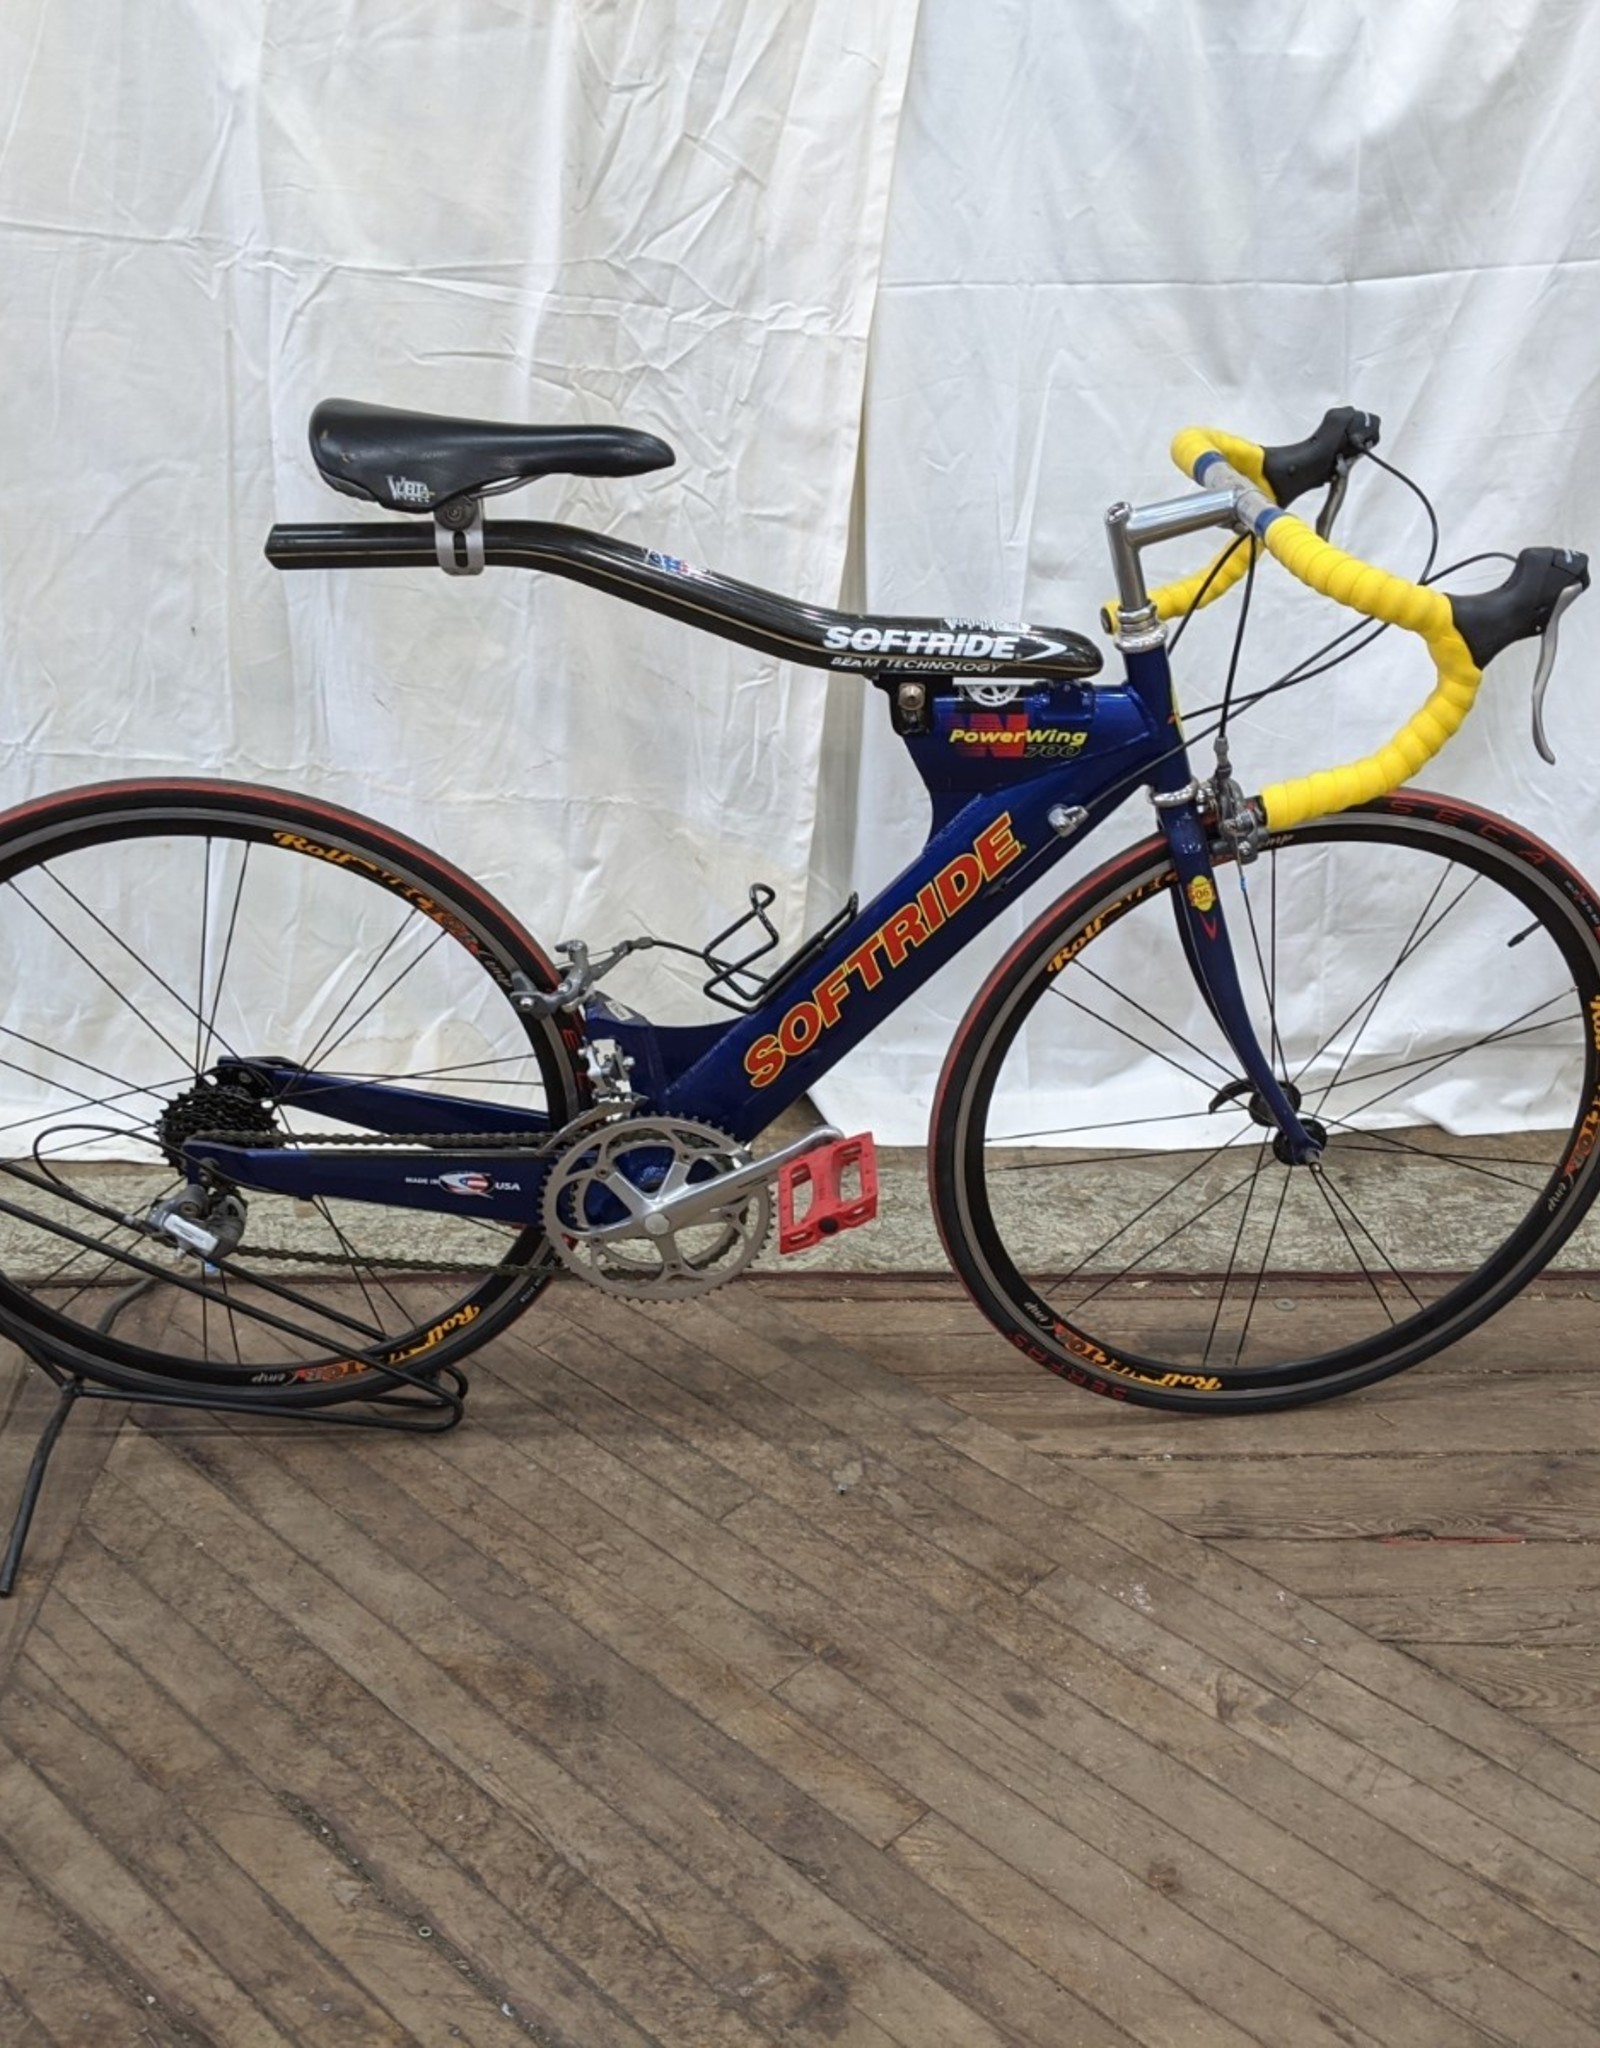 55cm Softride PowerWing 700 (1907, sf)